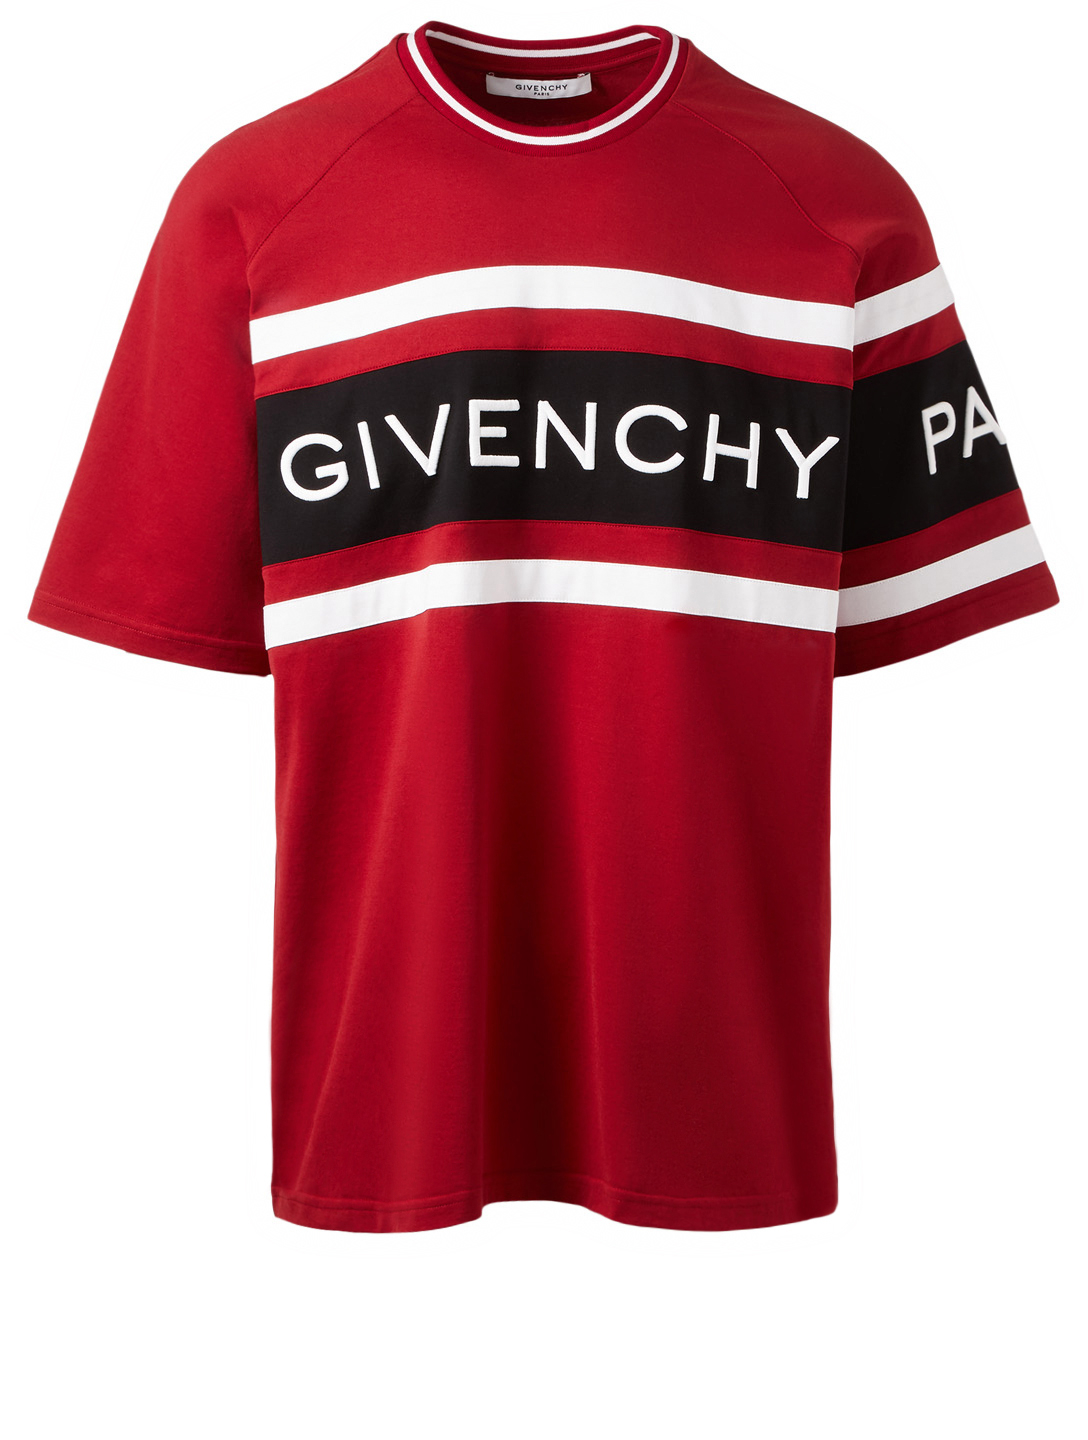 GIVENCHY Oversized Logo T-Shirt Men's Red